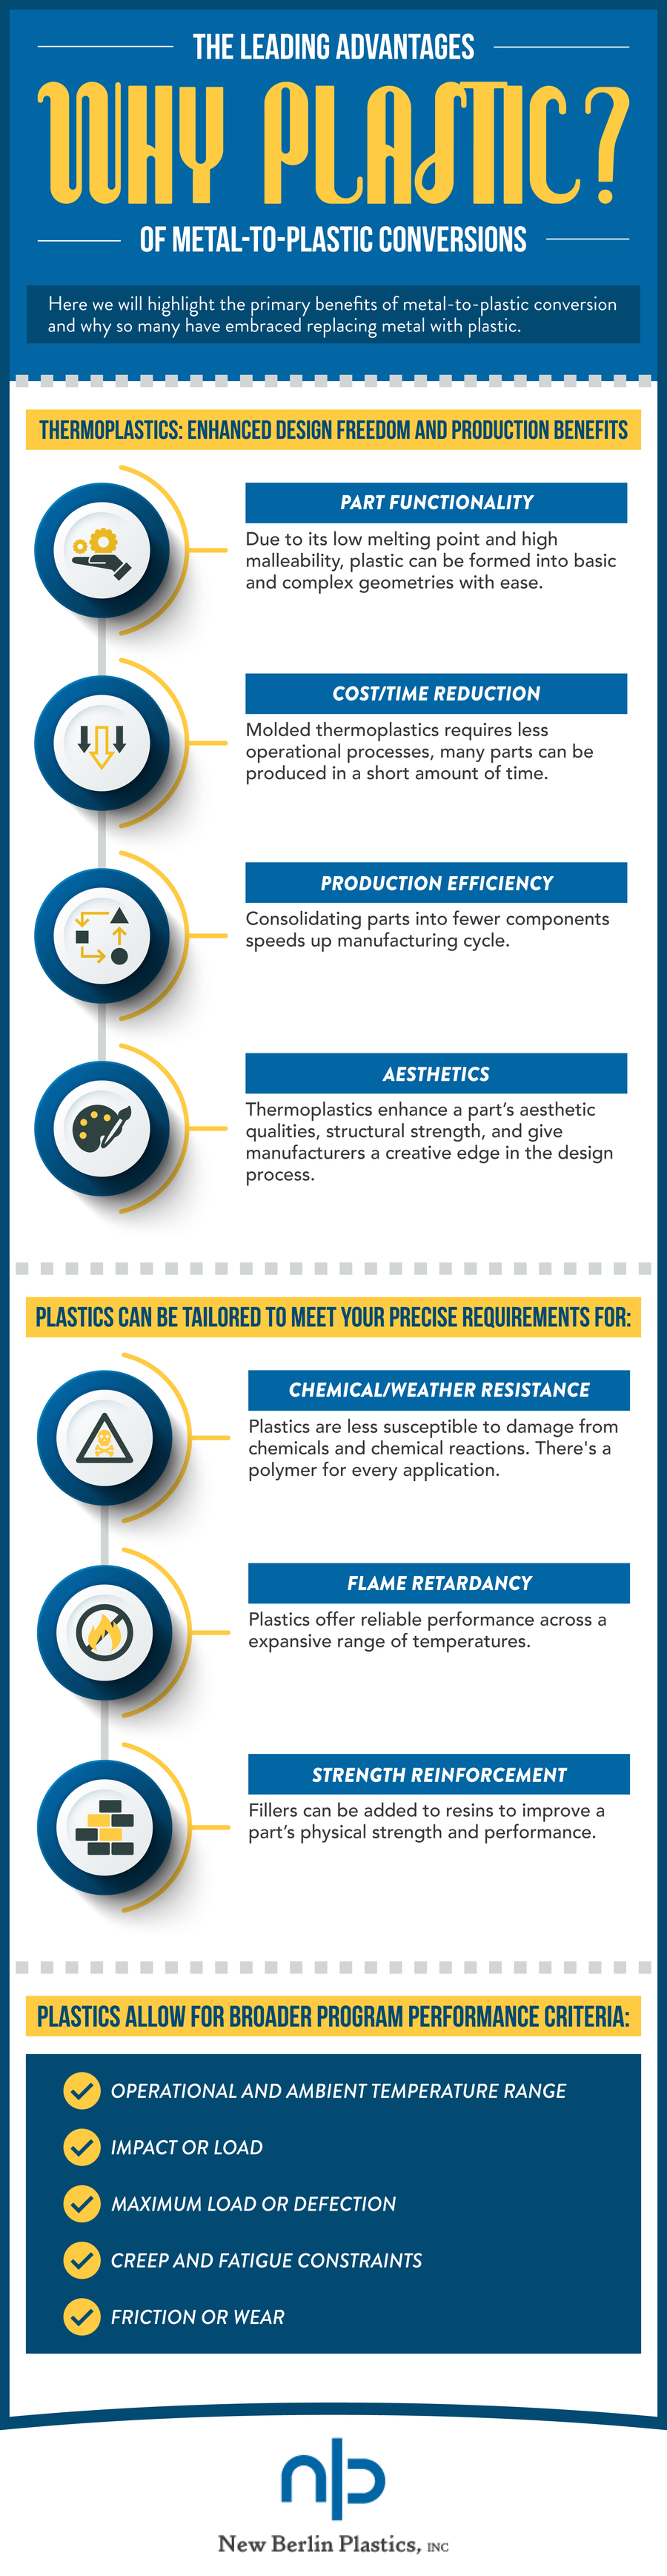 The Leading Advantages of Metal to Plastic Conversions